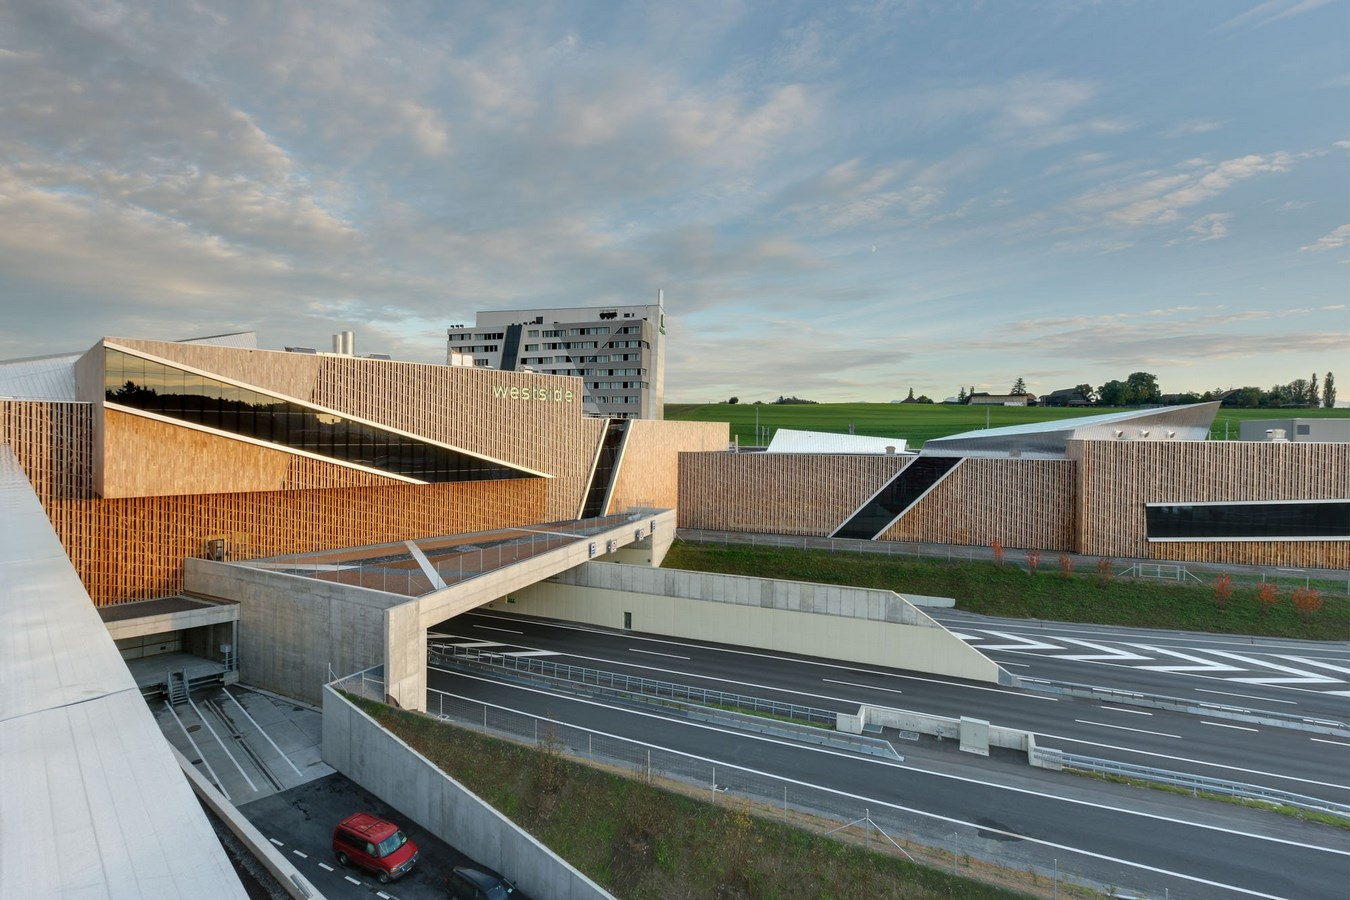 15 Iconic Projects by Daniel Libeskind Every Architect must visit! - Westside shopping and leisure centre